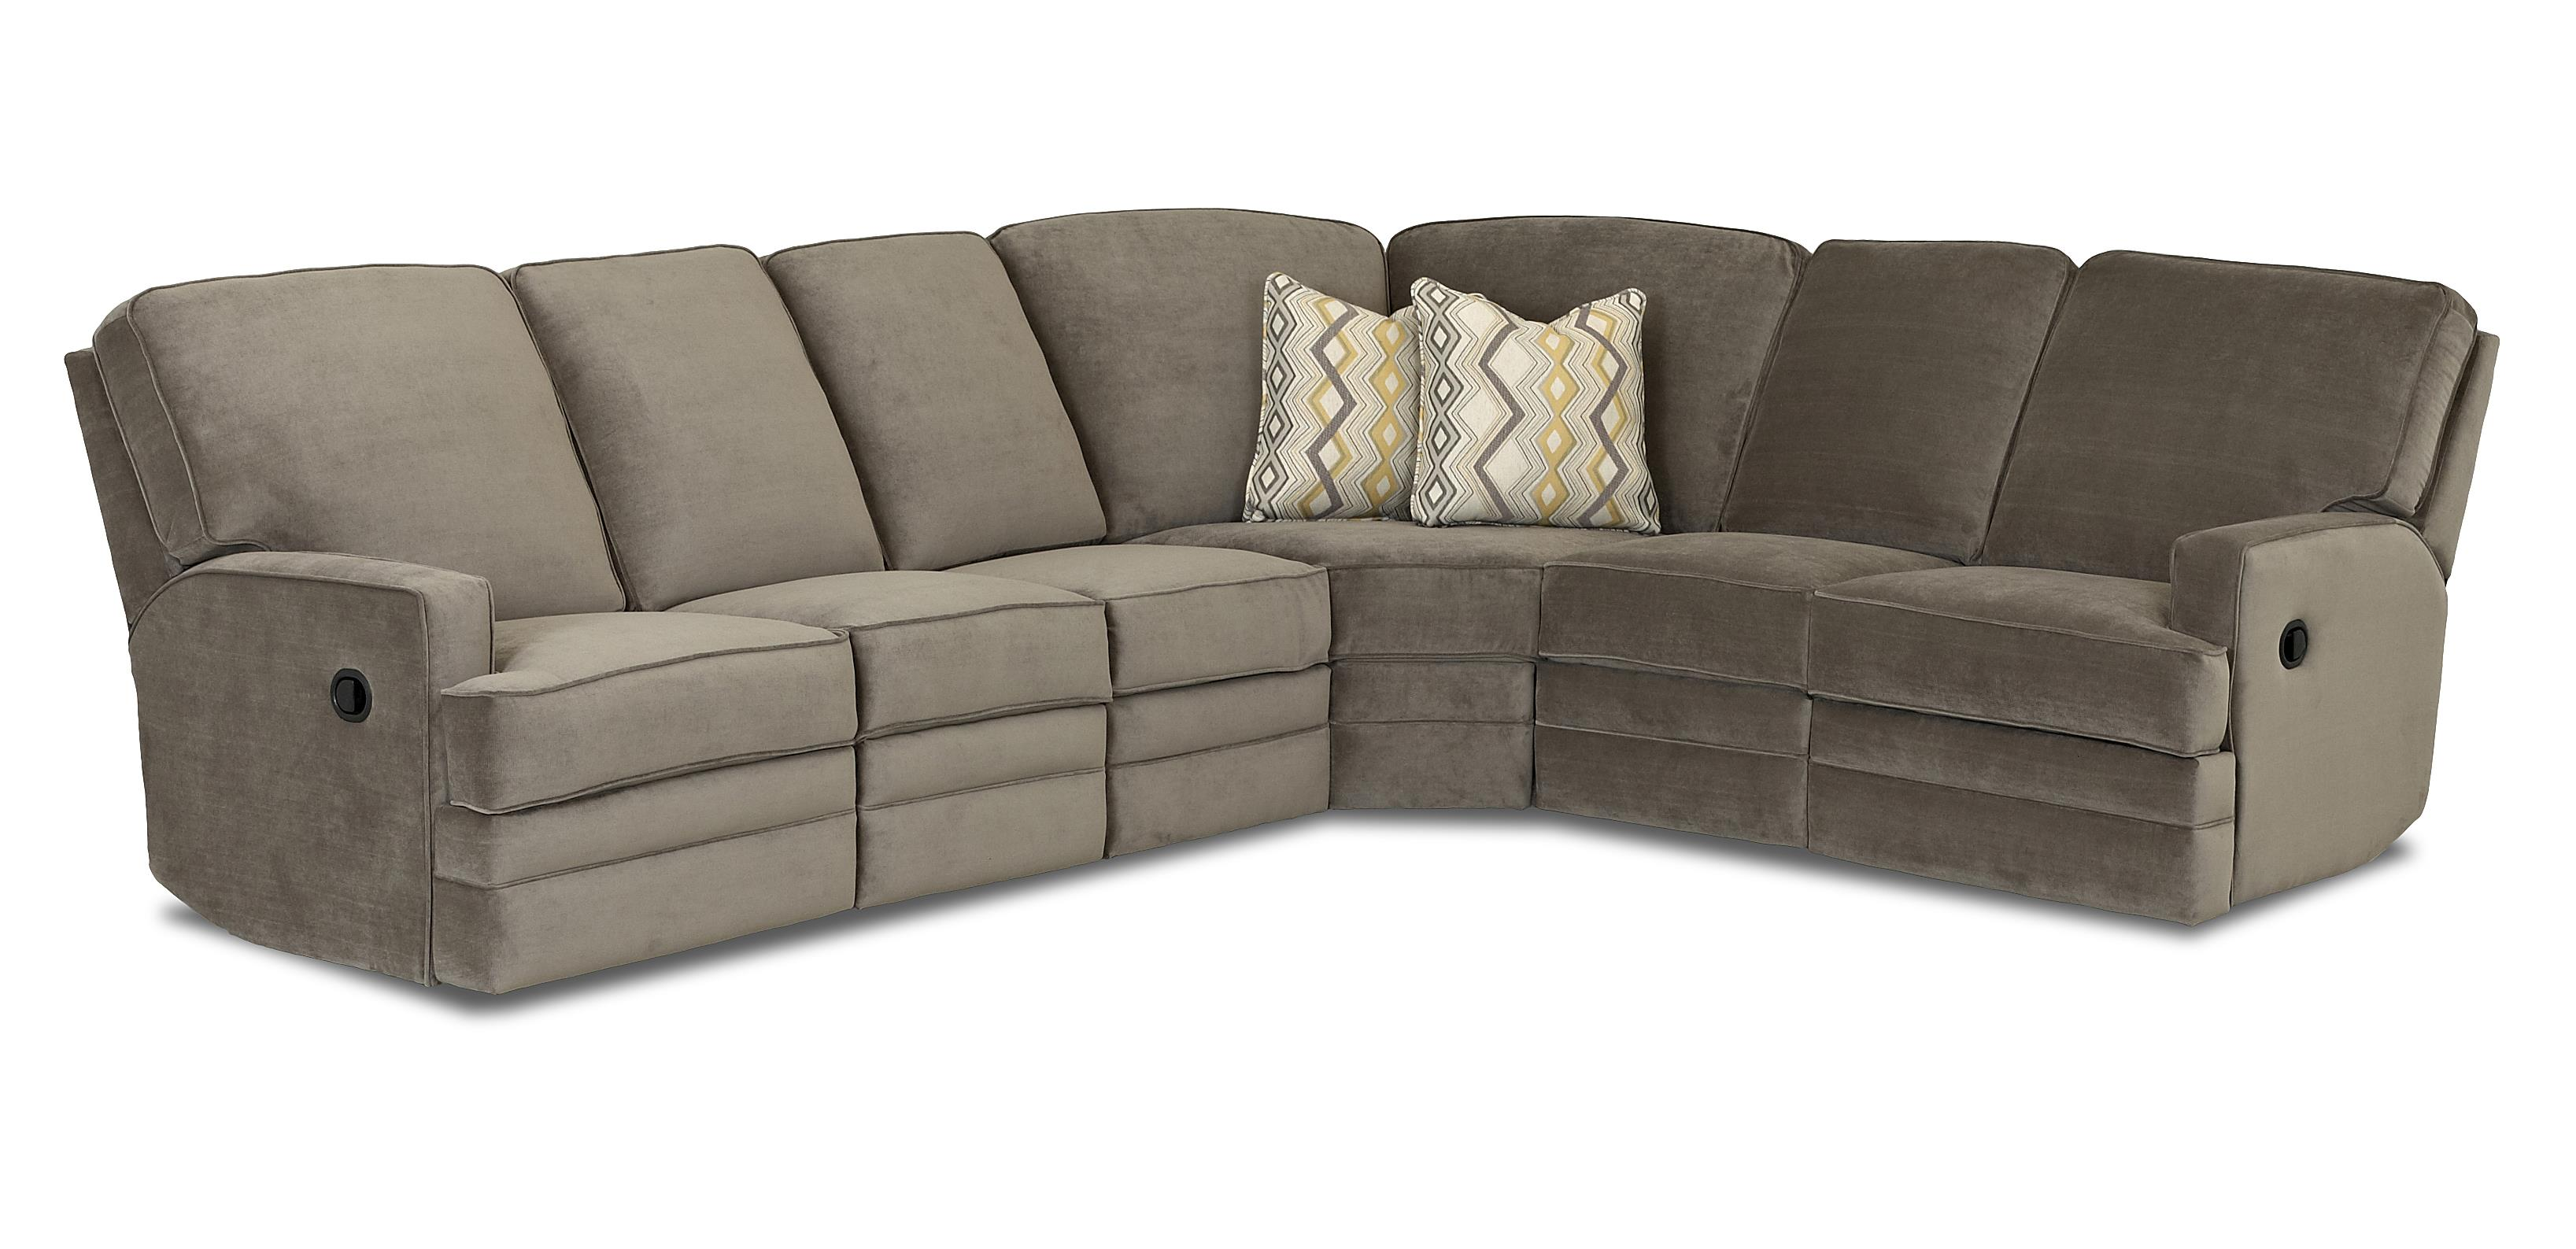 Casual Power Reclining Sectional Sofa